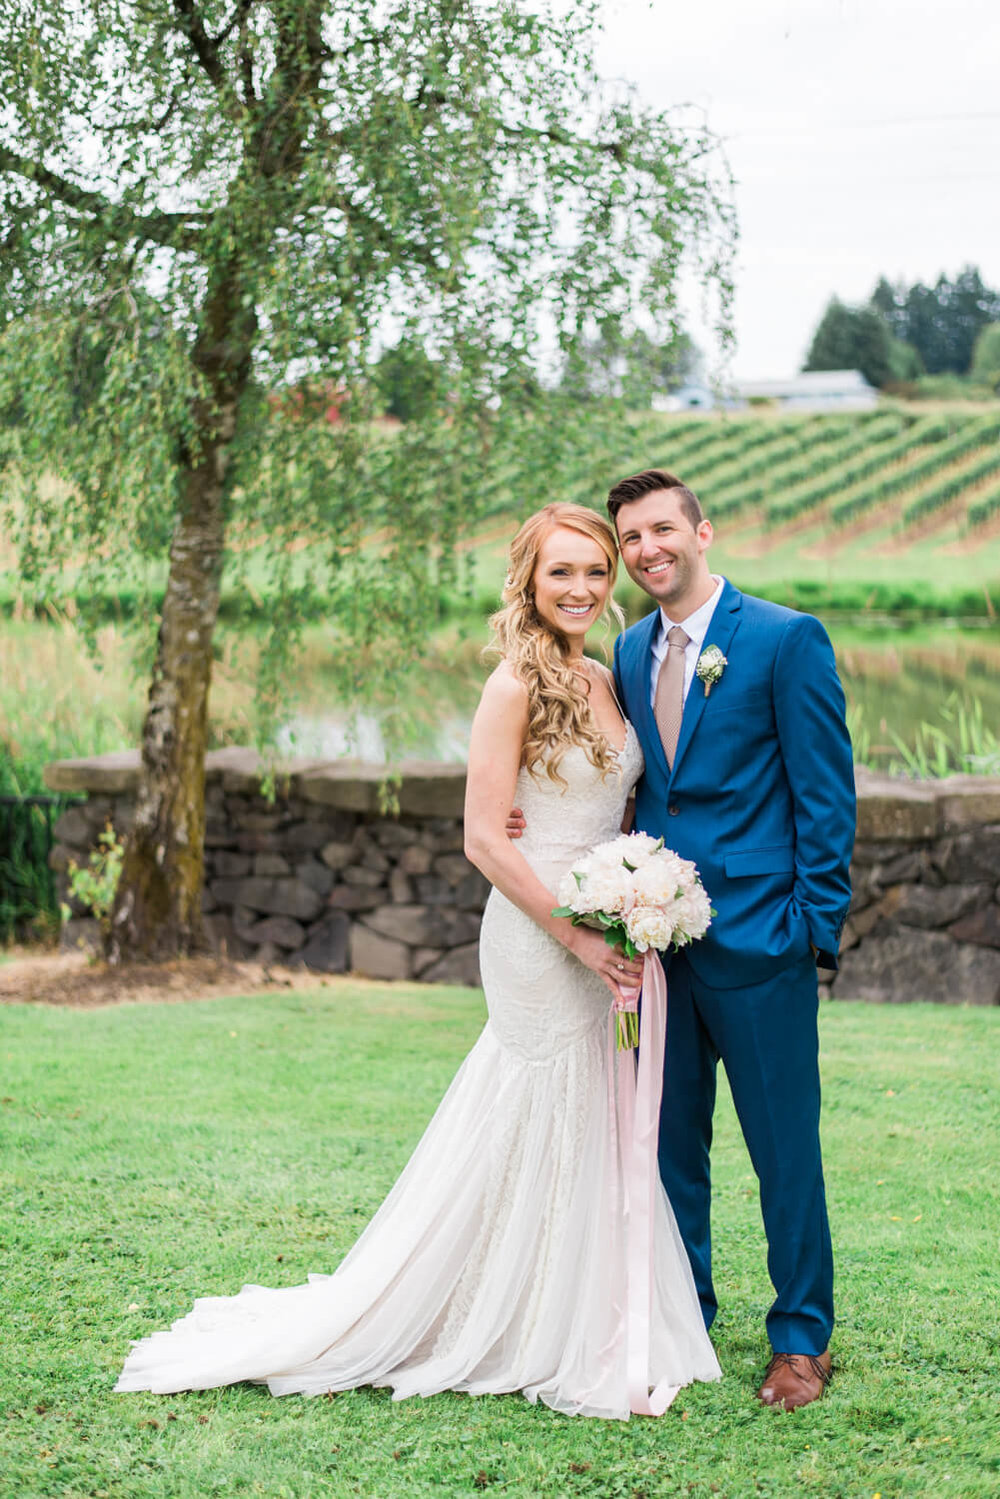 portland-wedding-photography-bethany-vineyard-shelley-marie-photo-009.jpg